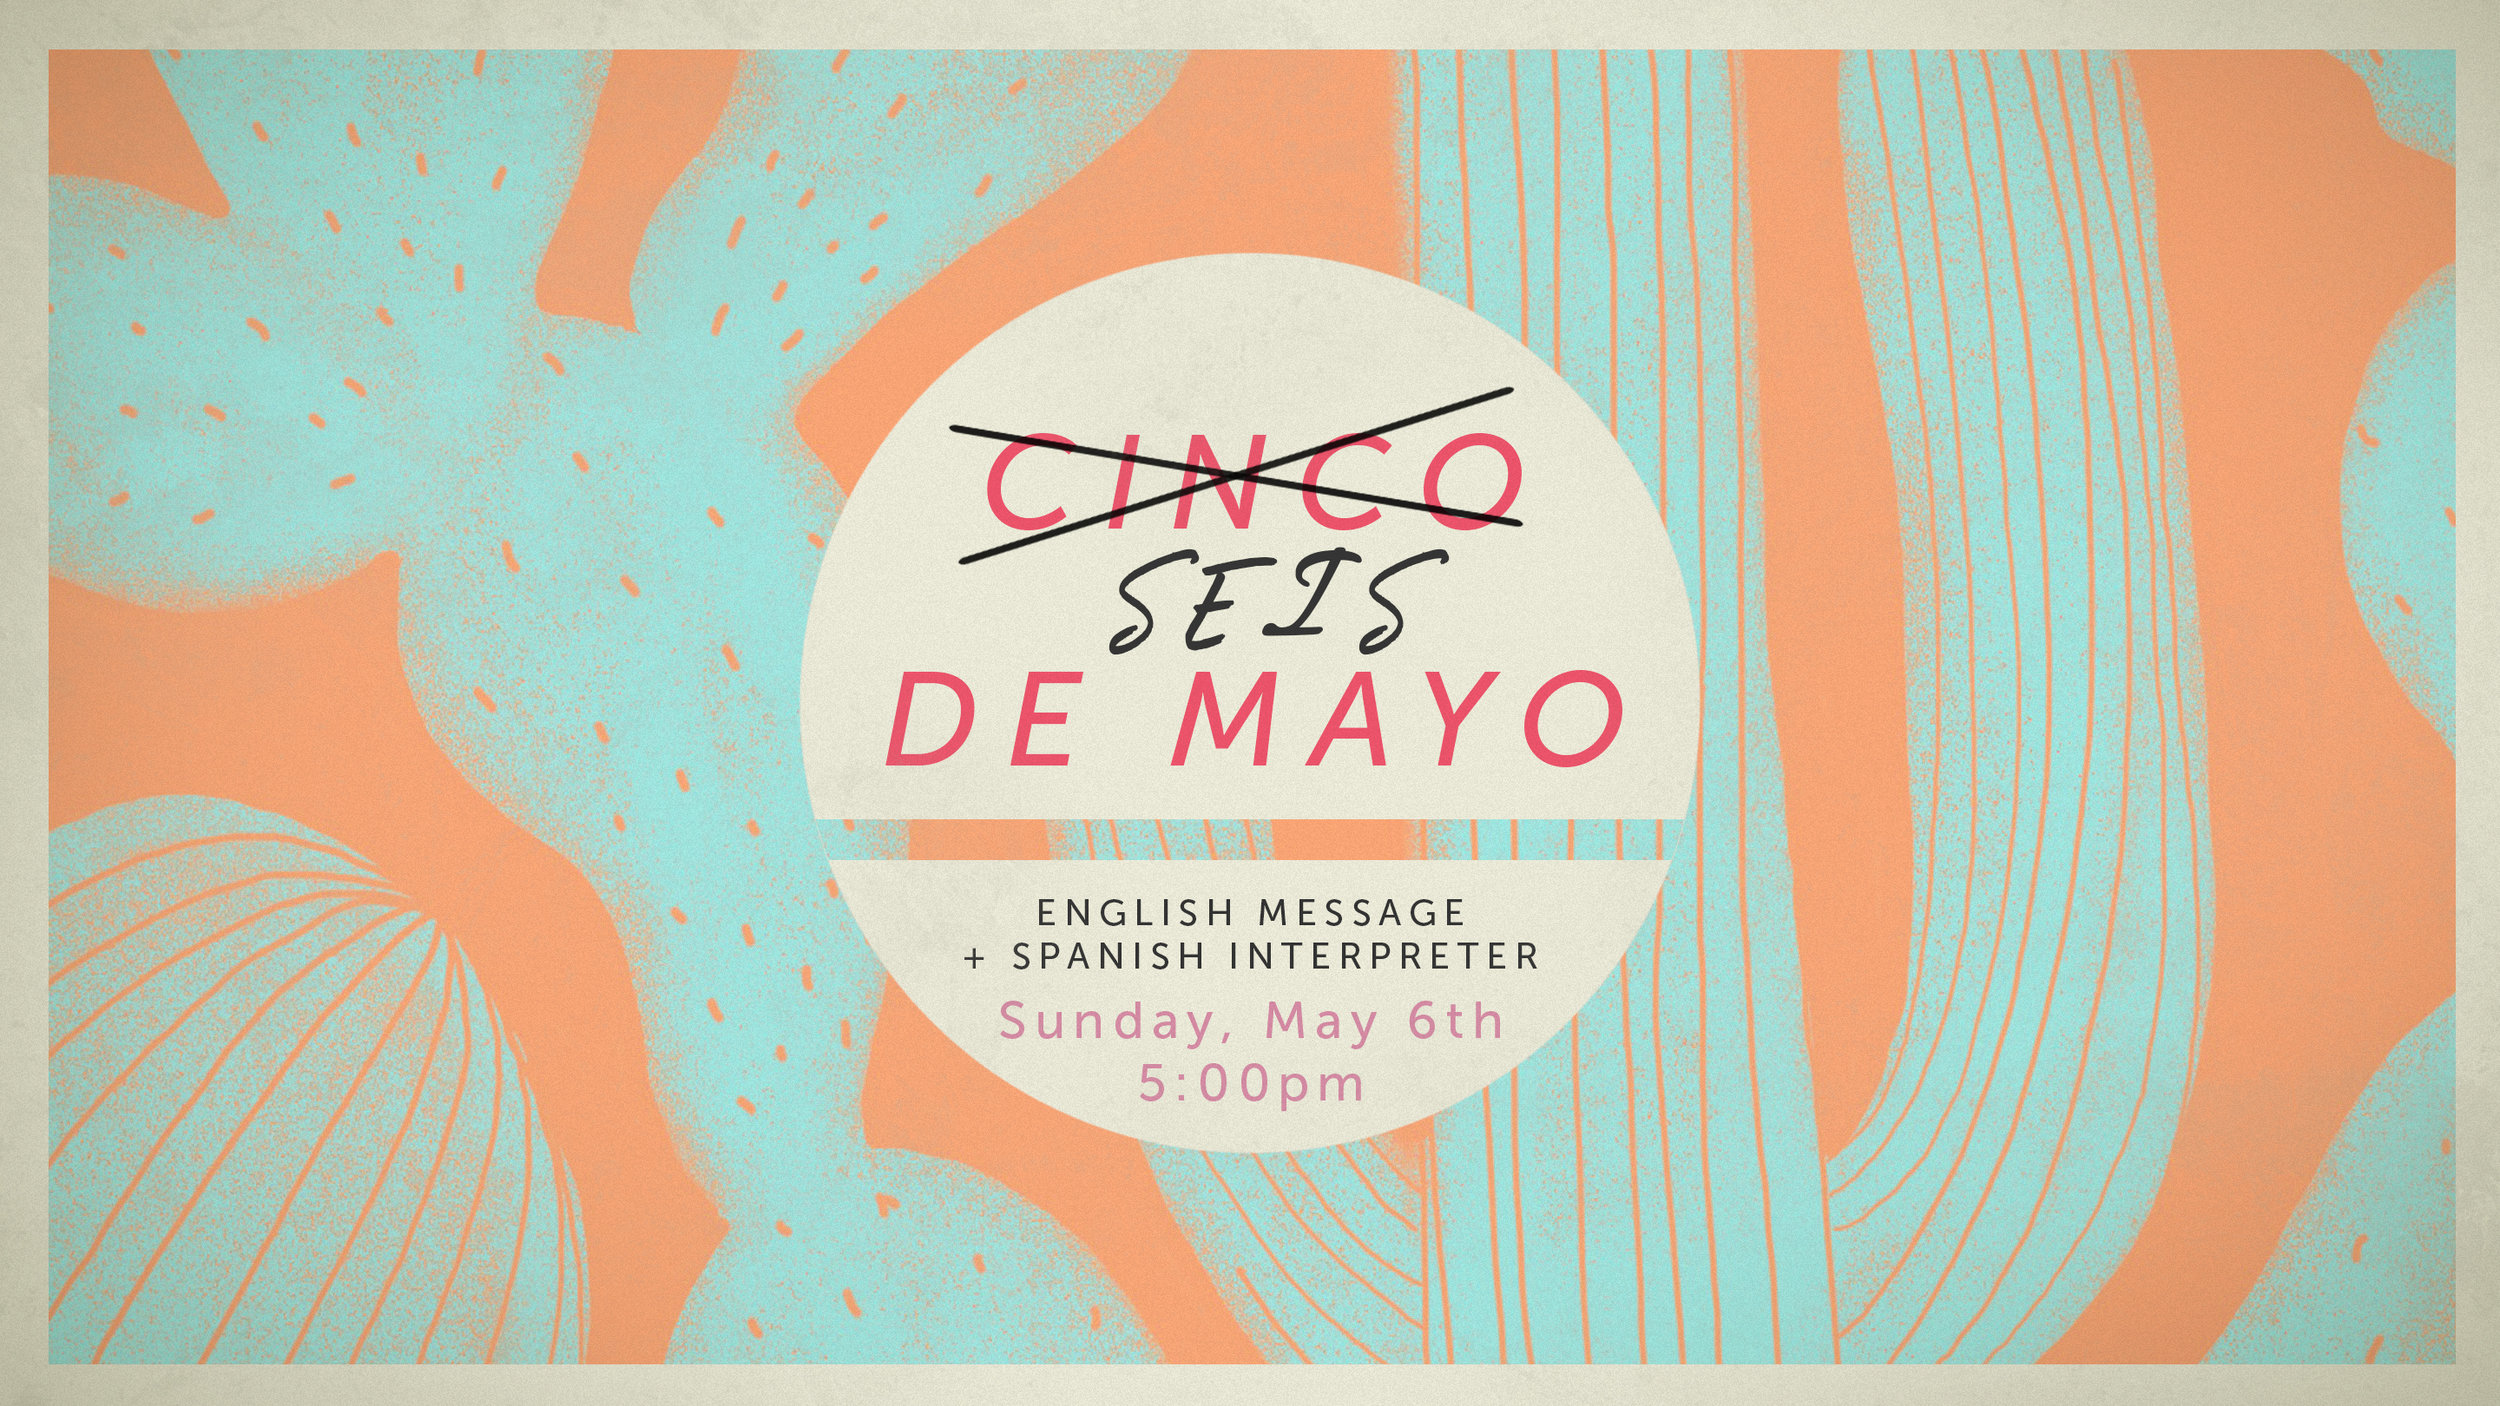 Our English and Reconciliación Spanish congregations are combining for a special service on Sunday, May 6th at 5 p.m. We will be worshipping together in English and Spanish along with a message preached by Pastor Kendall and interpreted by Pastor Martin. We will end the evening with a time of fellowship (aka…a time of eating) including tamales, rice, beans, hot dogs for the kids and a Christian Mariachi Band!